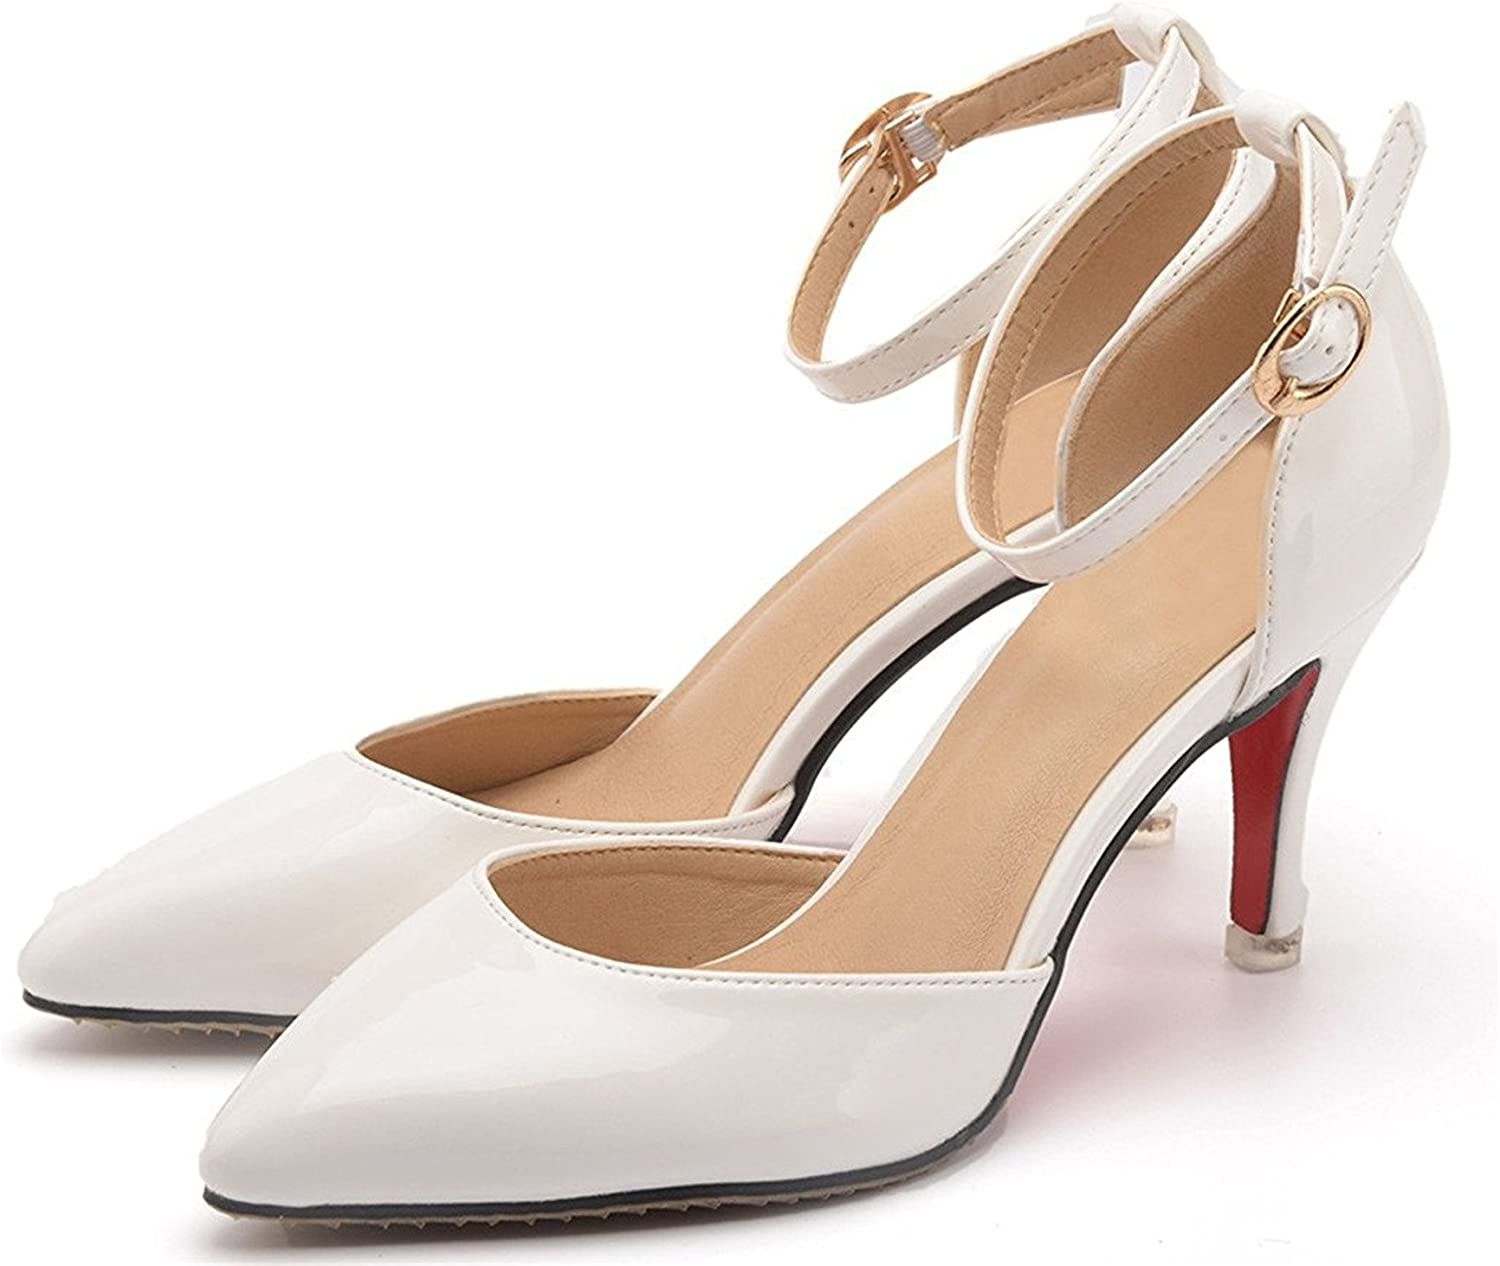 Tirahse Sweet Women's Elegant Pointed Toe Ankle Strap Thin Mid Heel Court Pumps Wedding Dress shoes